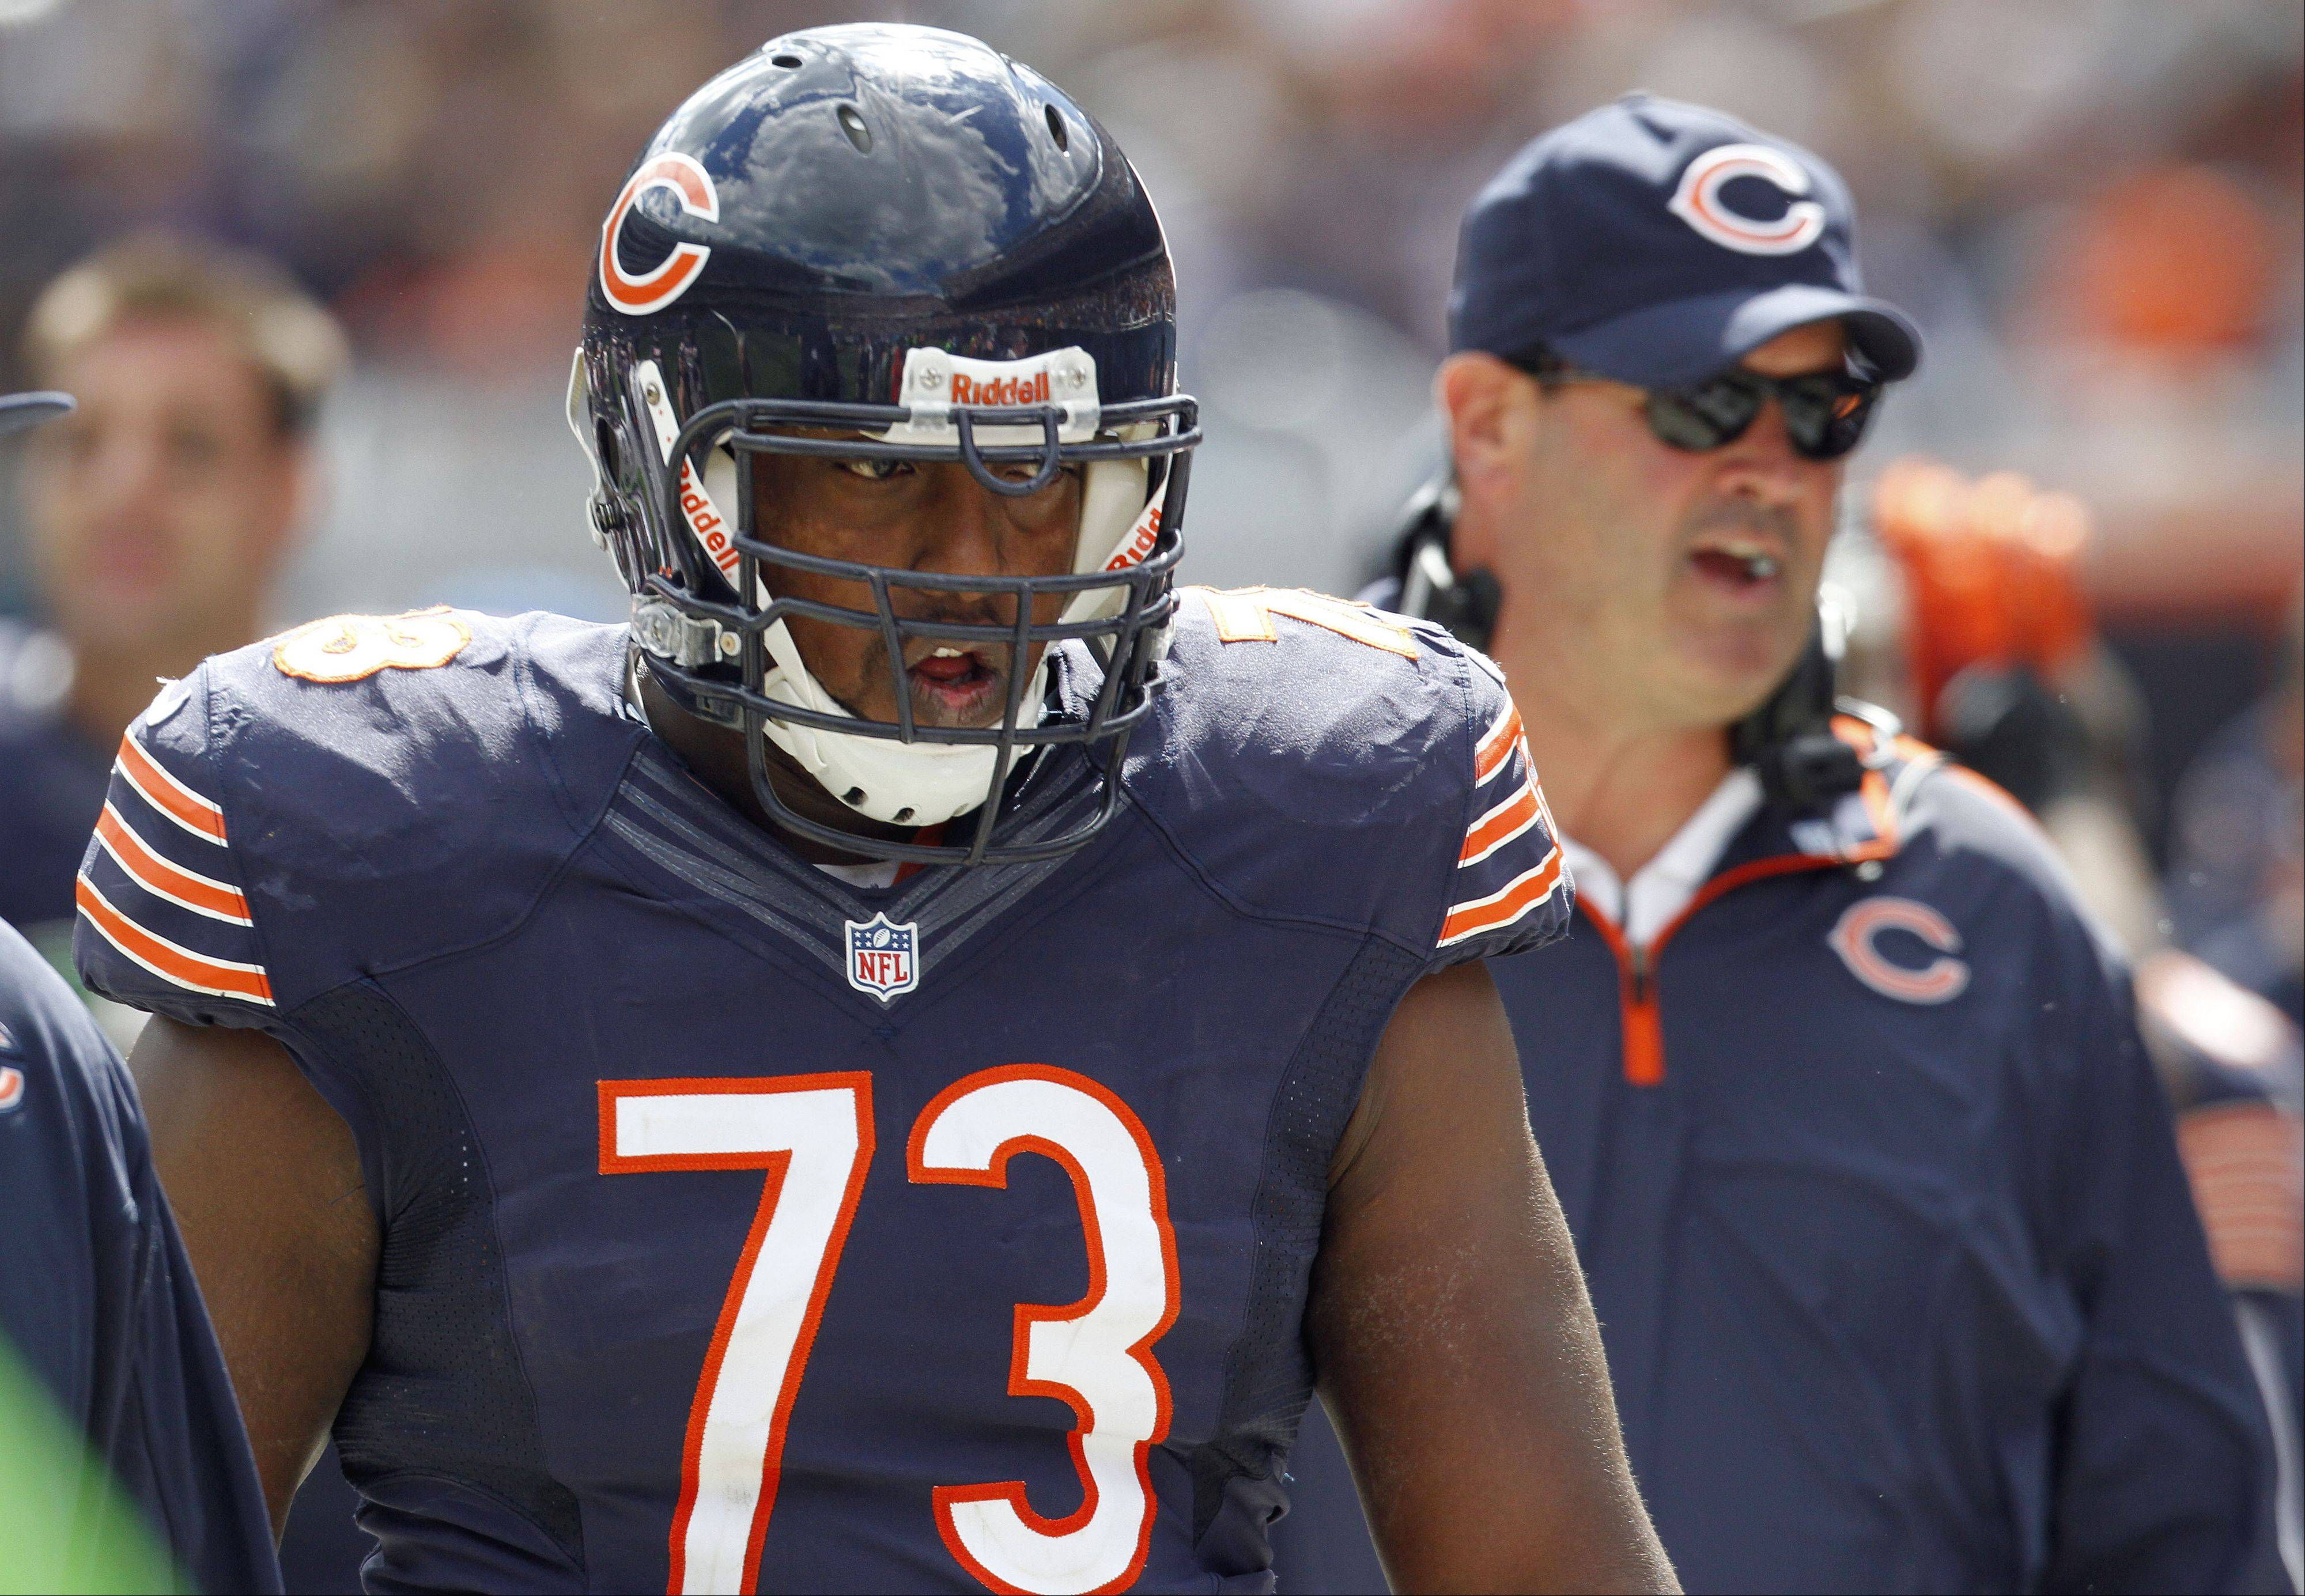 Steve Lundy/slundy@dailyherald.com � Chicago Bears tackle J'Marcus Webb walks to the bench with offensive coordinator Mike Tice following during the Bears 23-6 win over the St. Louis Rams Sunday at Soldier Field in Chicago.